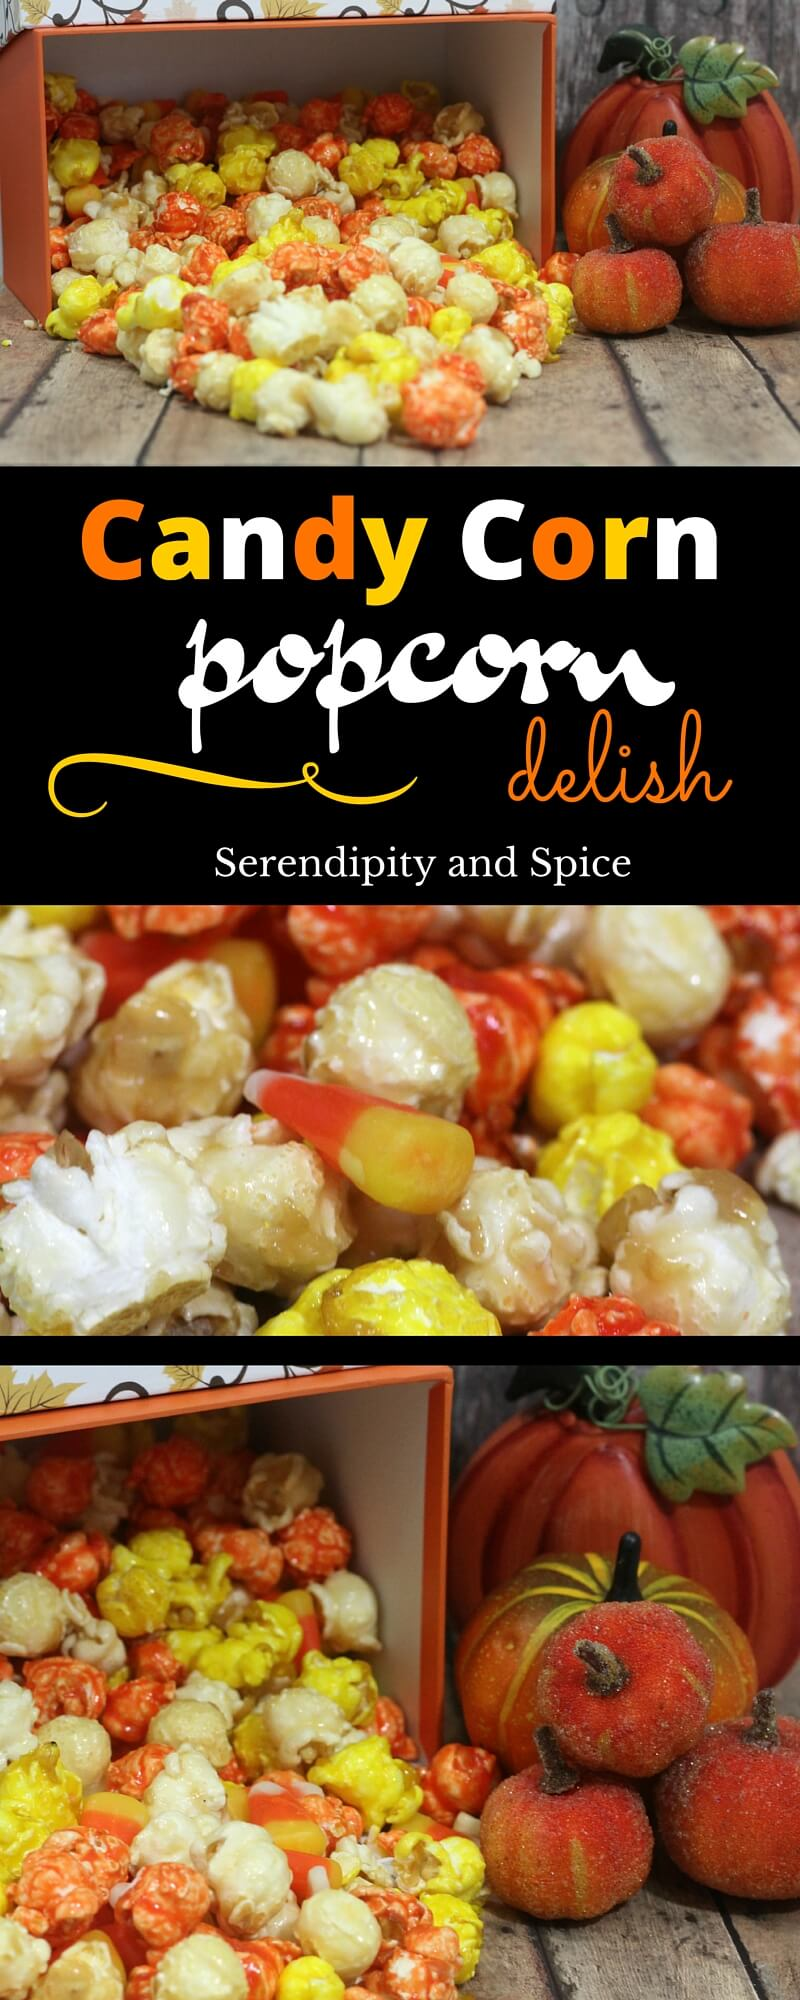 Candy Corn Fall Popcorn Recipe - Serendipity and Spice